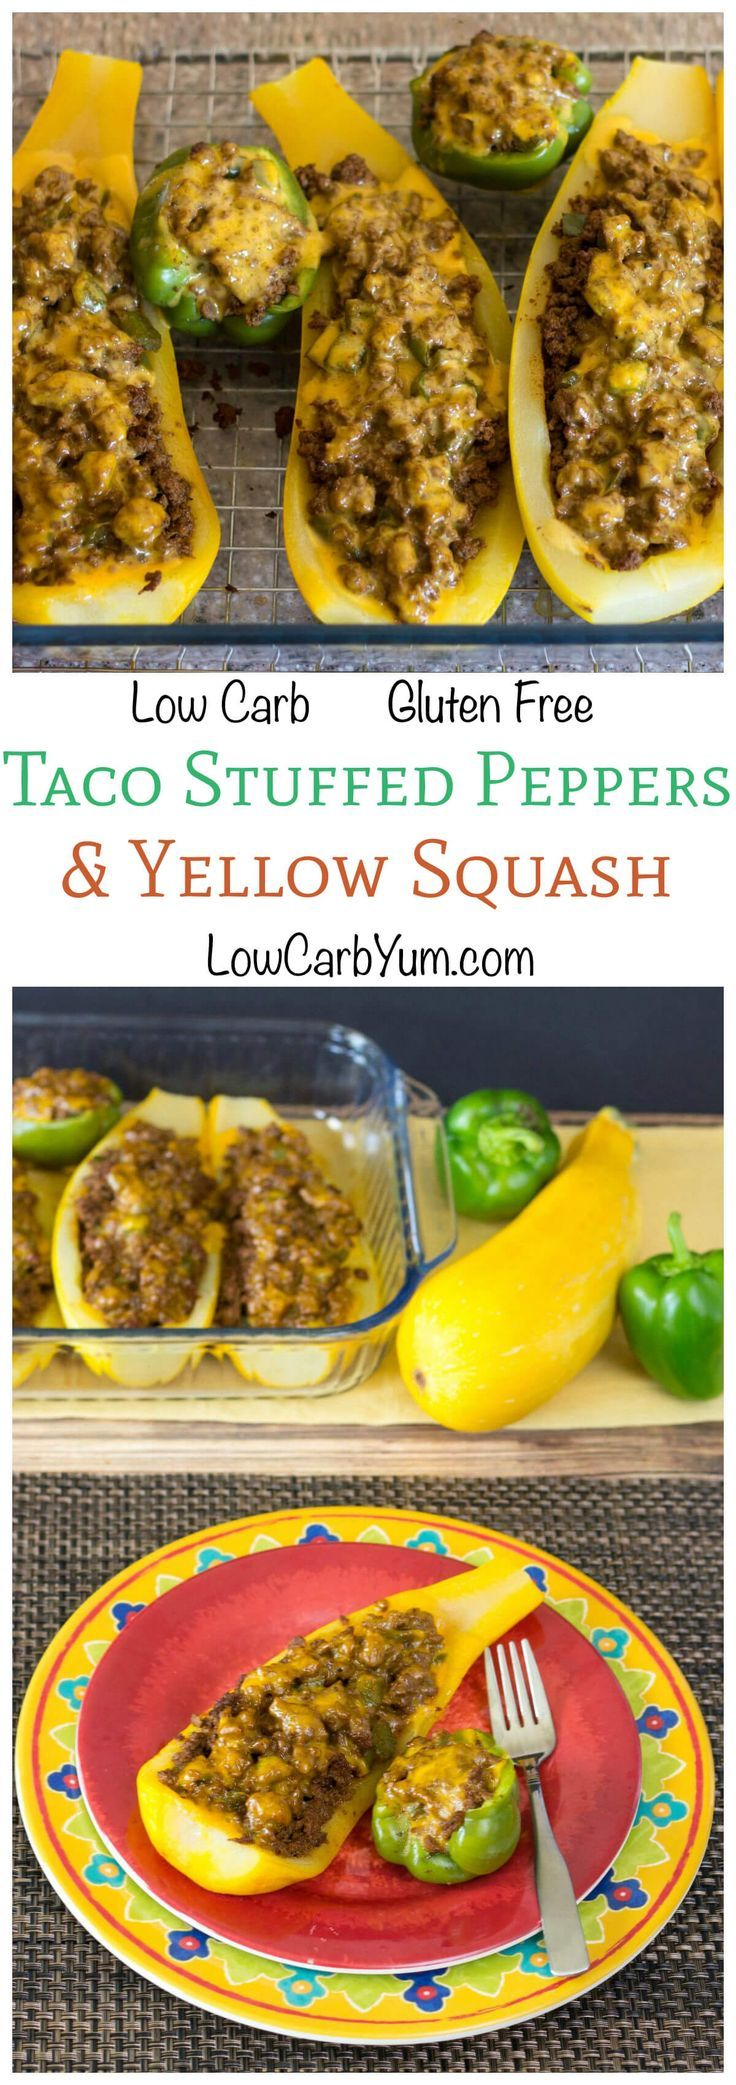 (14) 100+ Yellow Squash Recipes on Pinterest